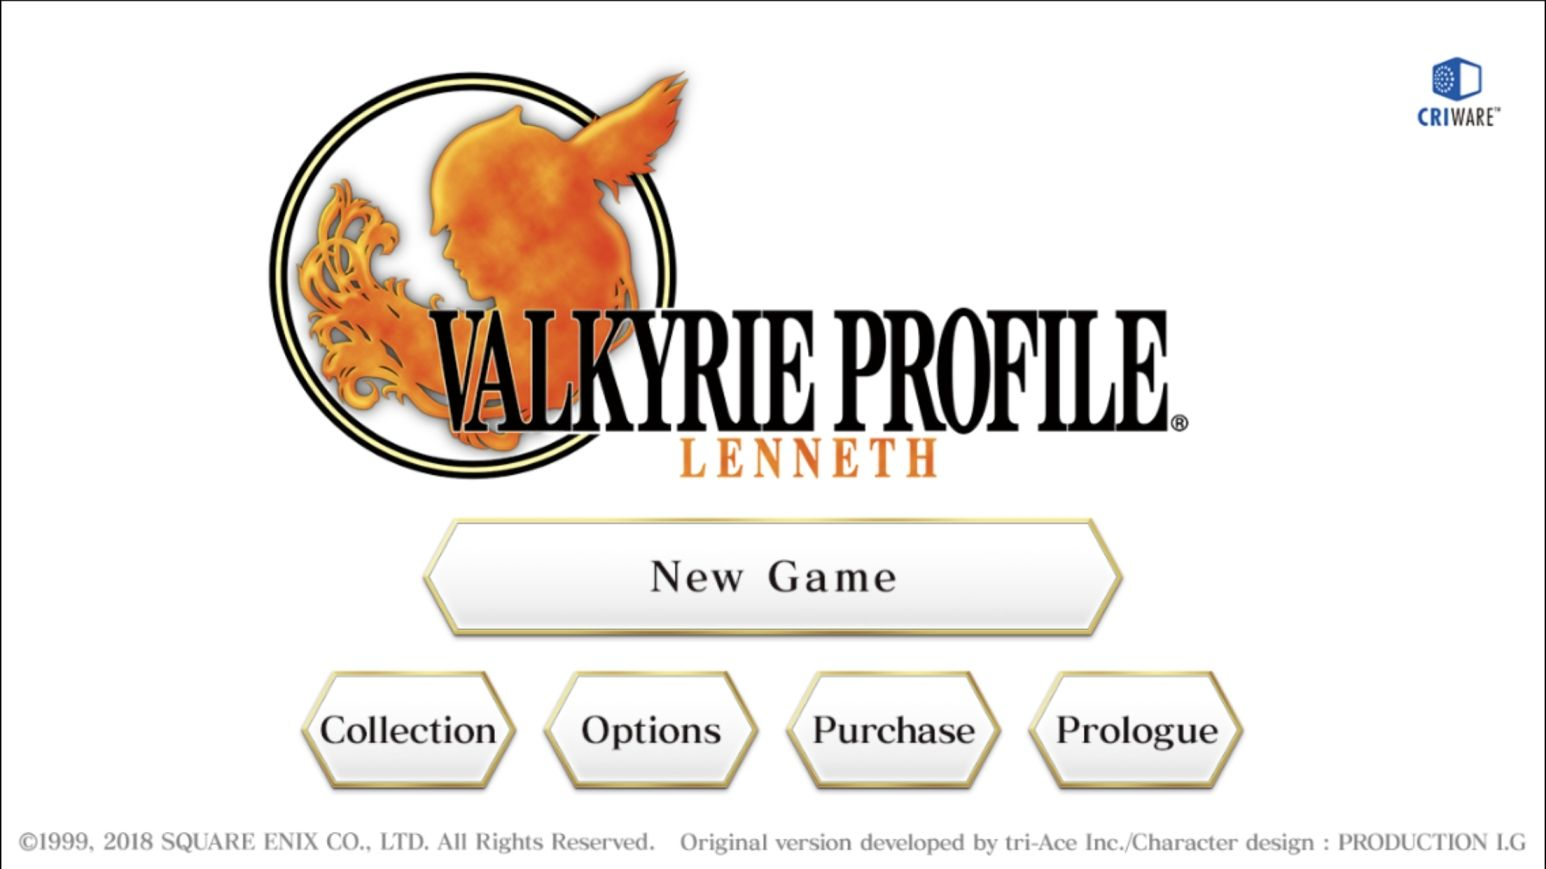 VALKYRIE PROFILE: LENNETH (copie d'écran 1 sur Android)